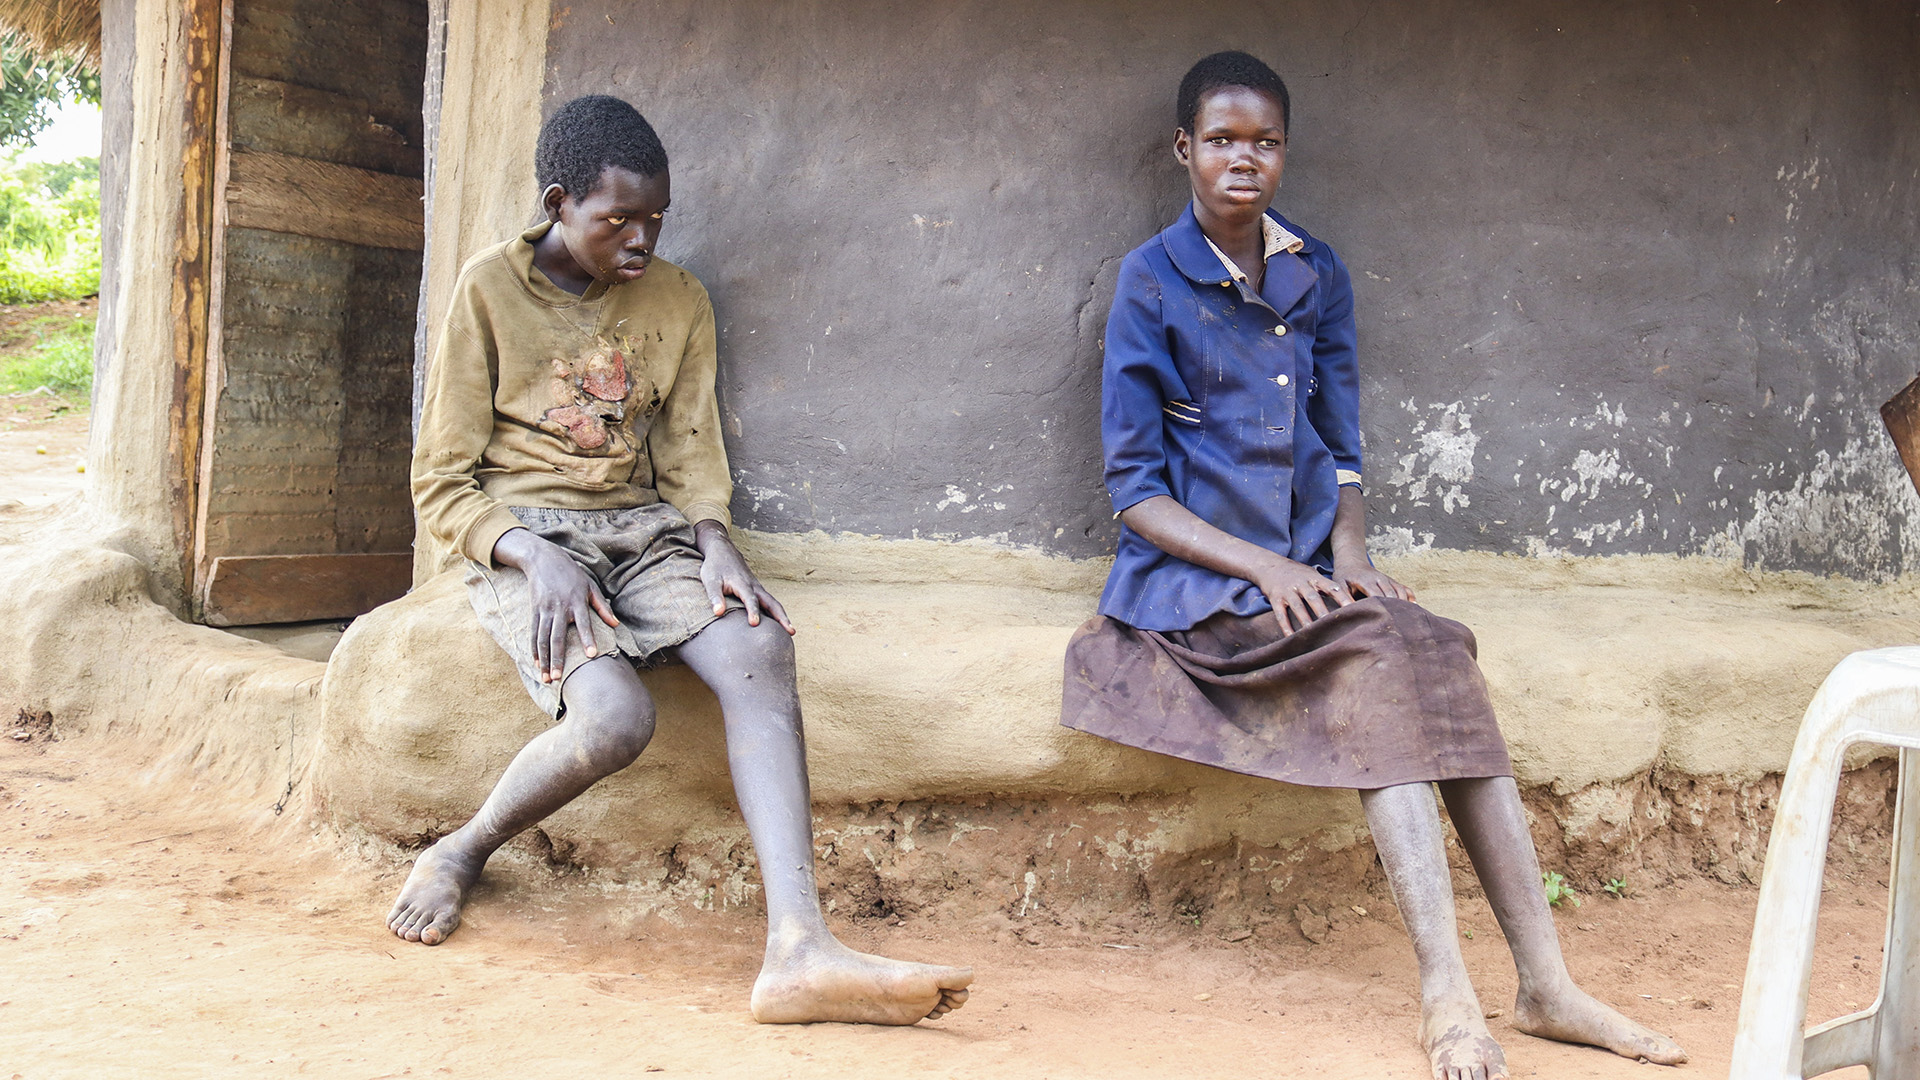 Burden Of Caring For Nodding Syndrome Patients Take Toll On Families In Northern Uganda